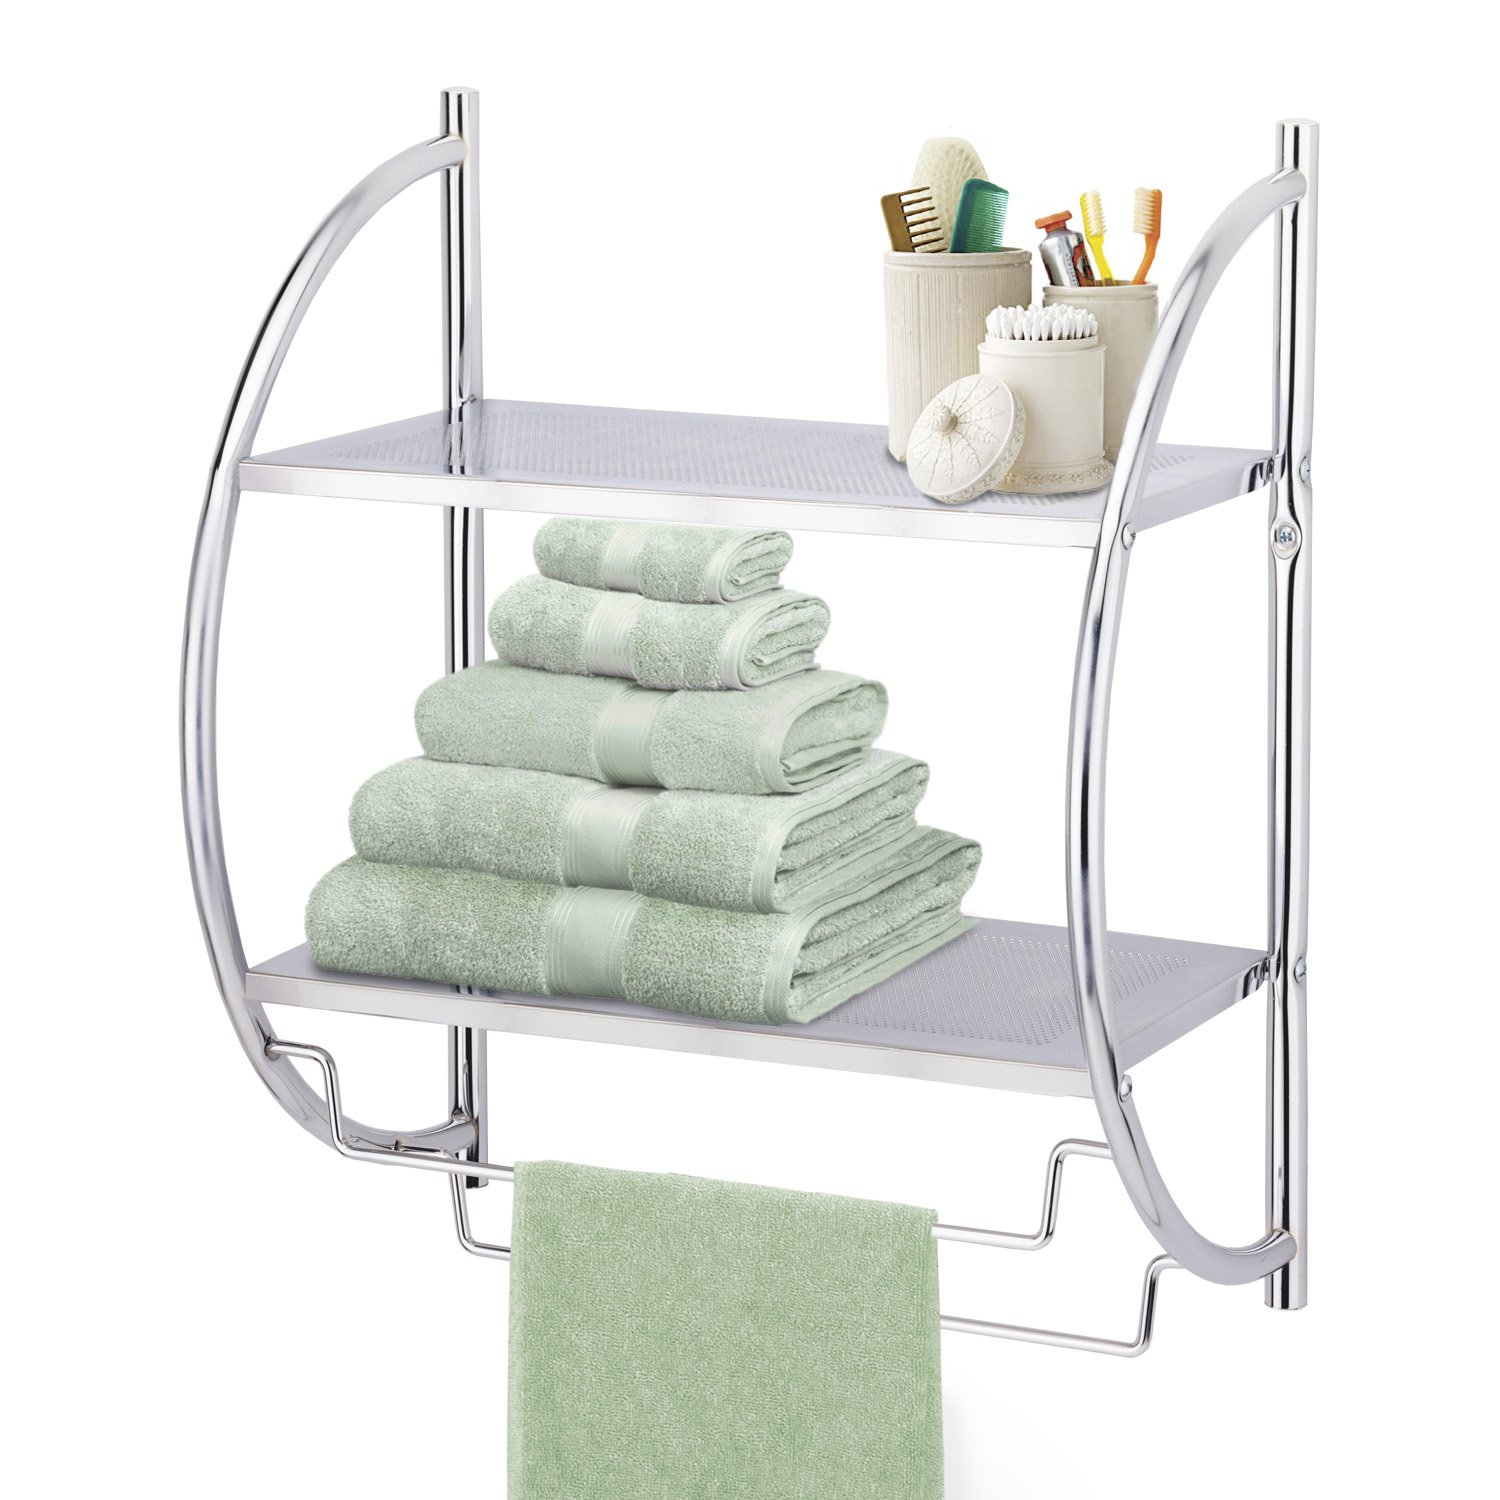 taylor u0026 brown chrome 2 tier wall mounted bathroom towel holder shelf rack amazoncouk kitchen u0026 home